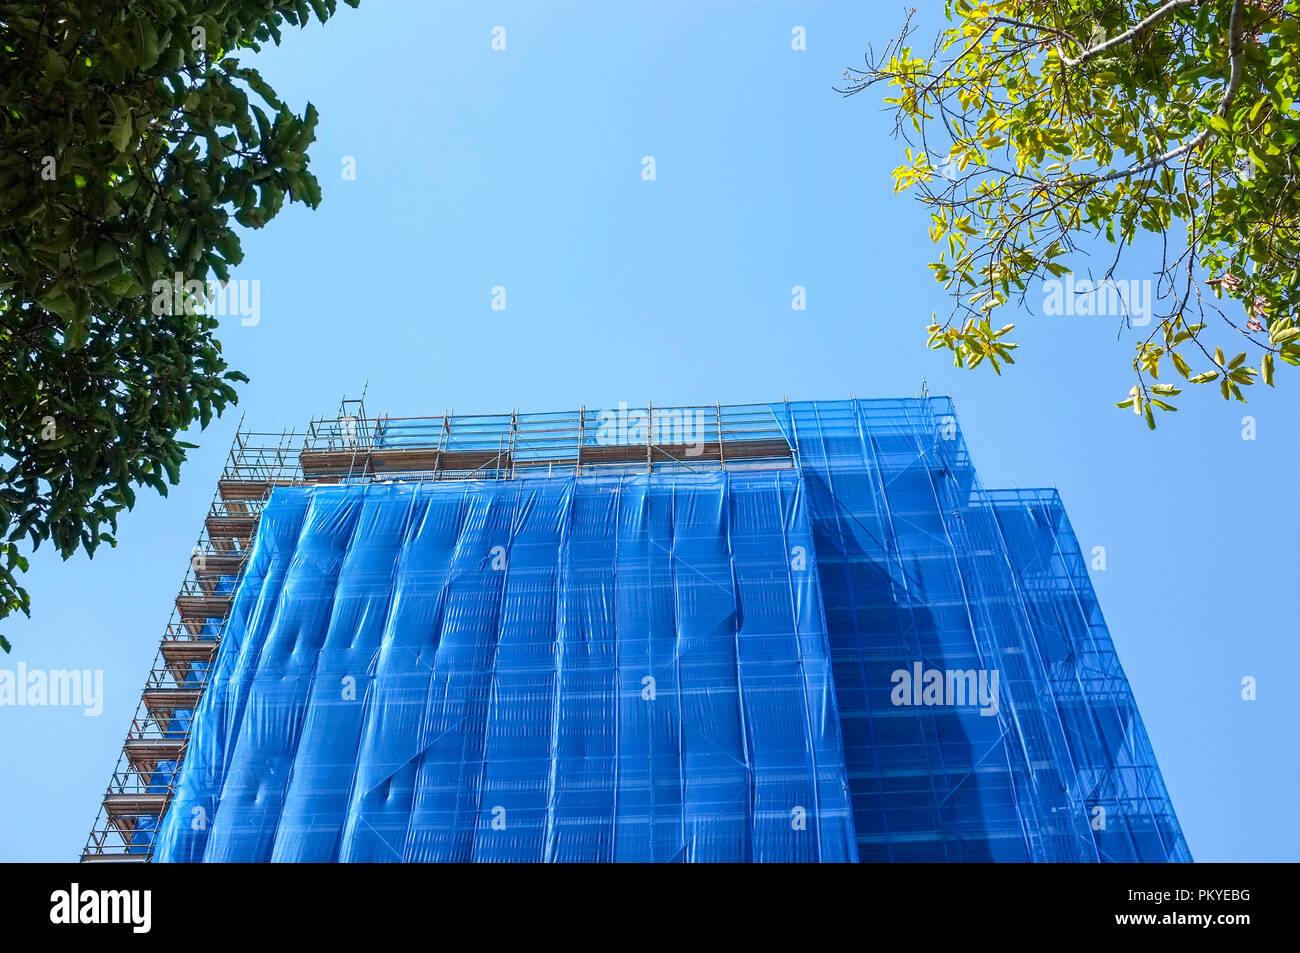 blue-scaffolding-over-a-building-PKYEBG.jpg